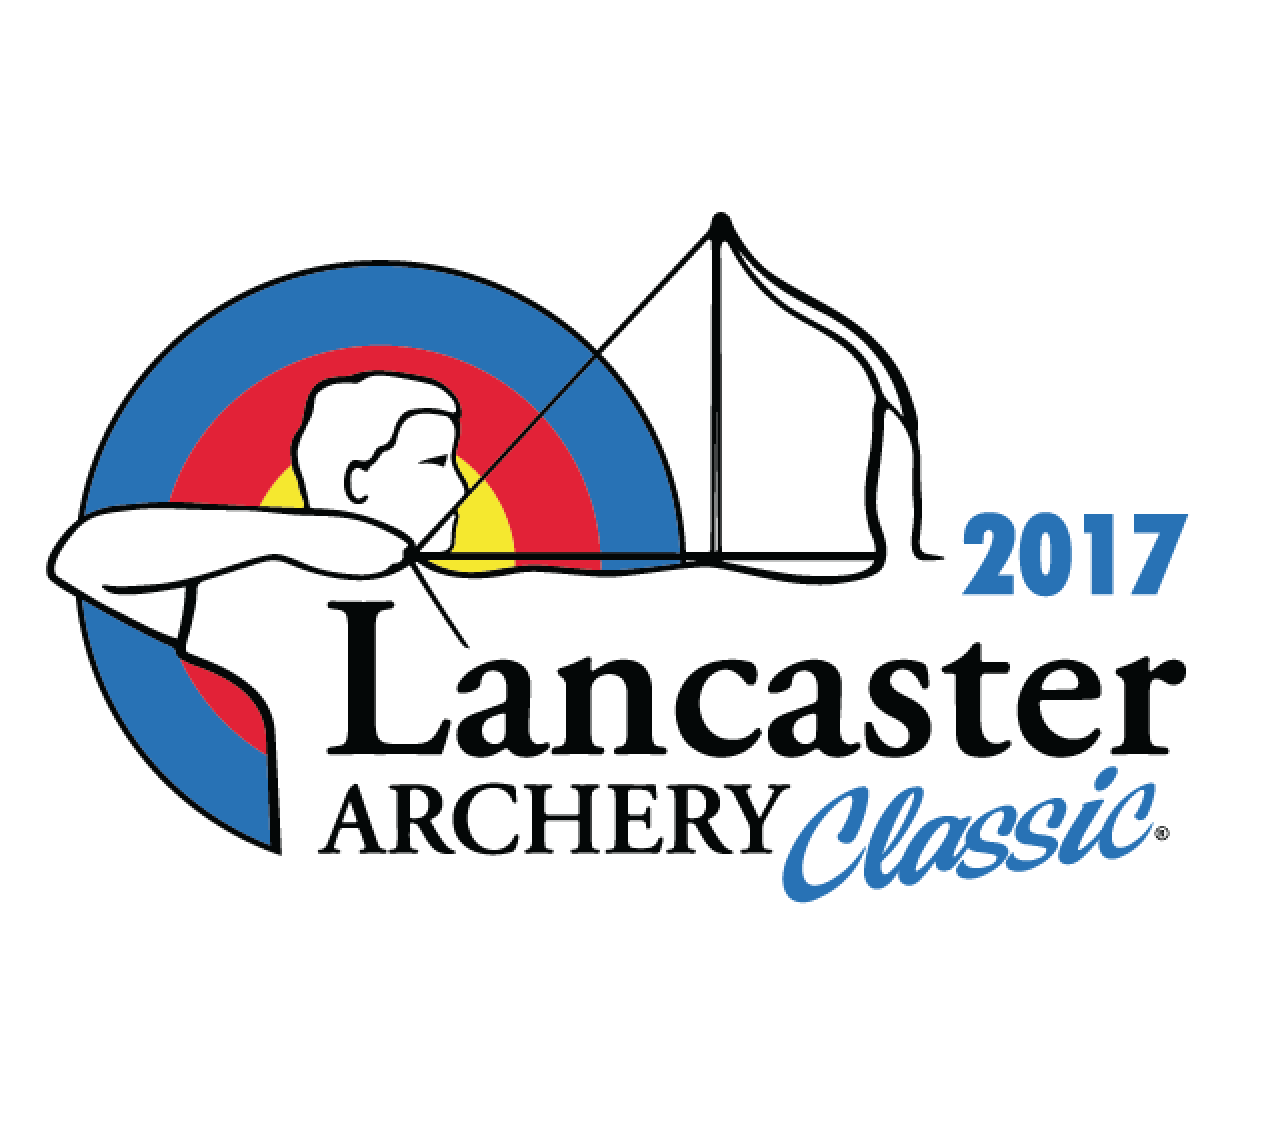 TEST - 2017 Lancaster Archery Classic - Test mobile h2h results - Test2